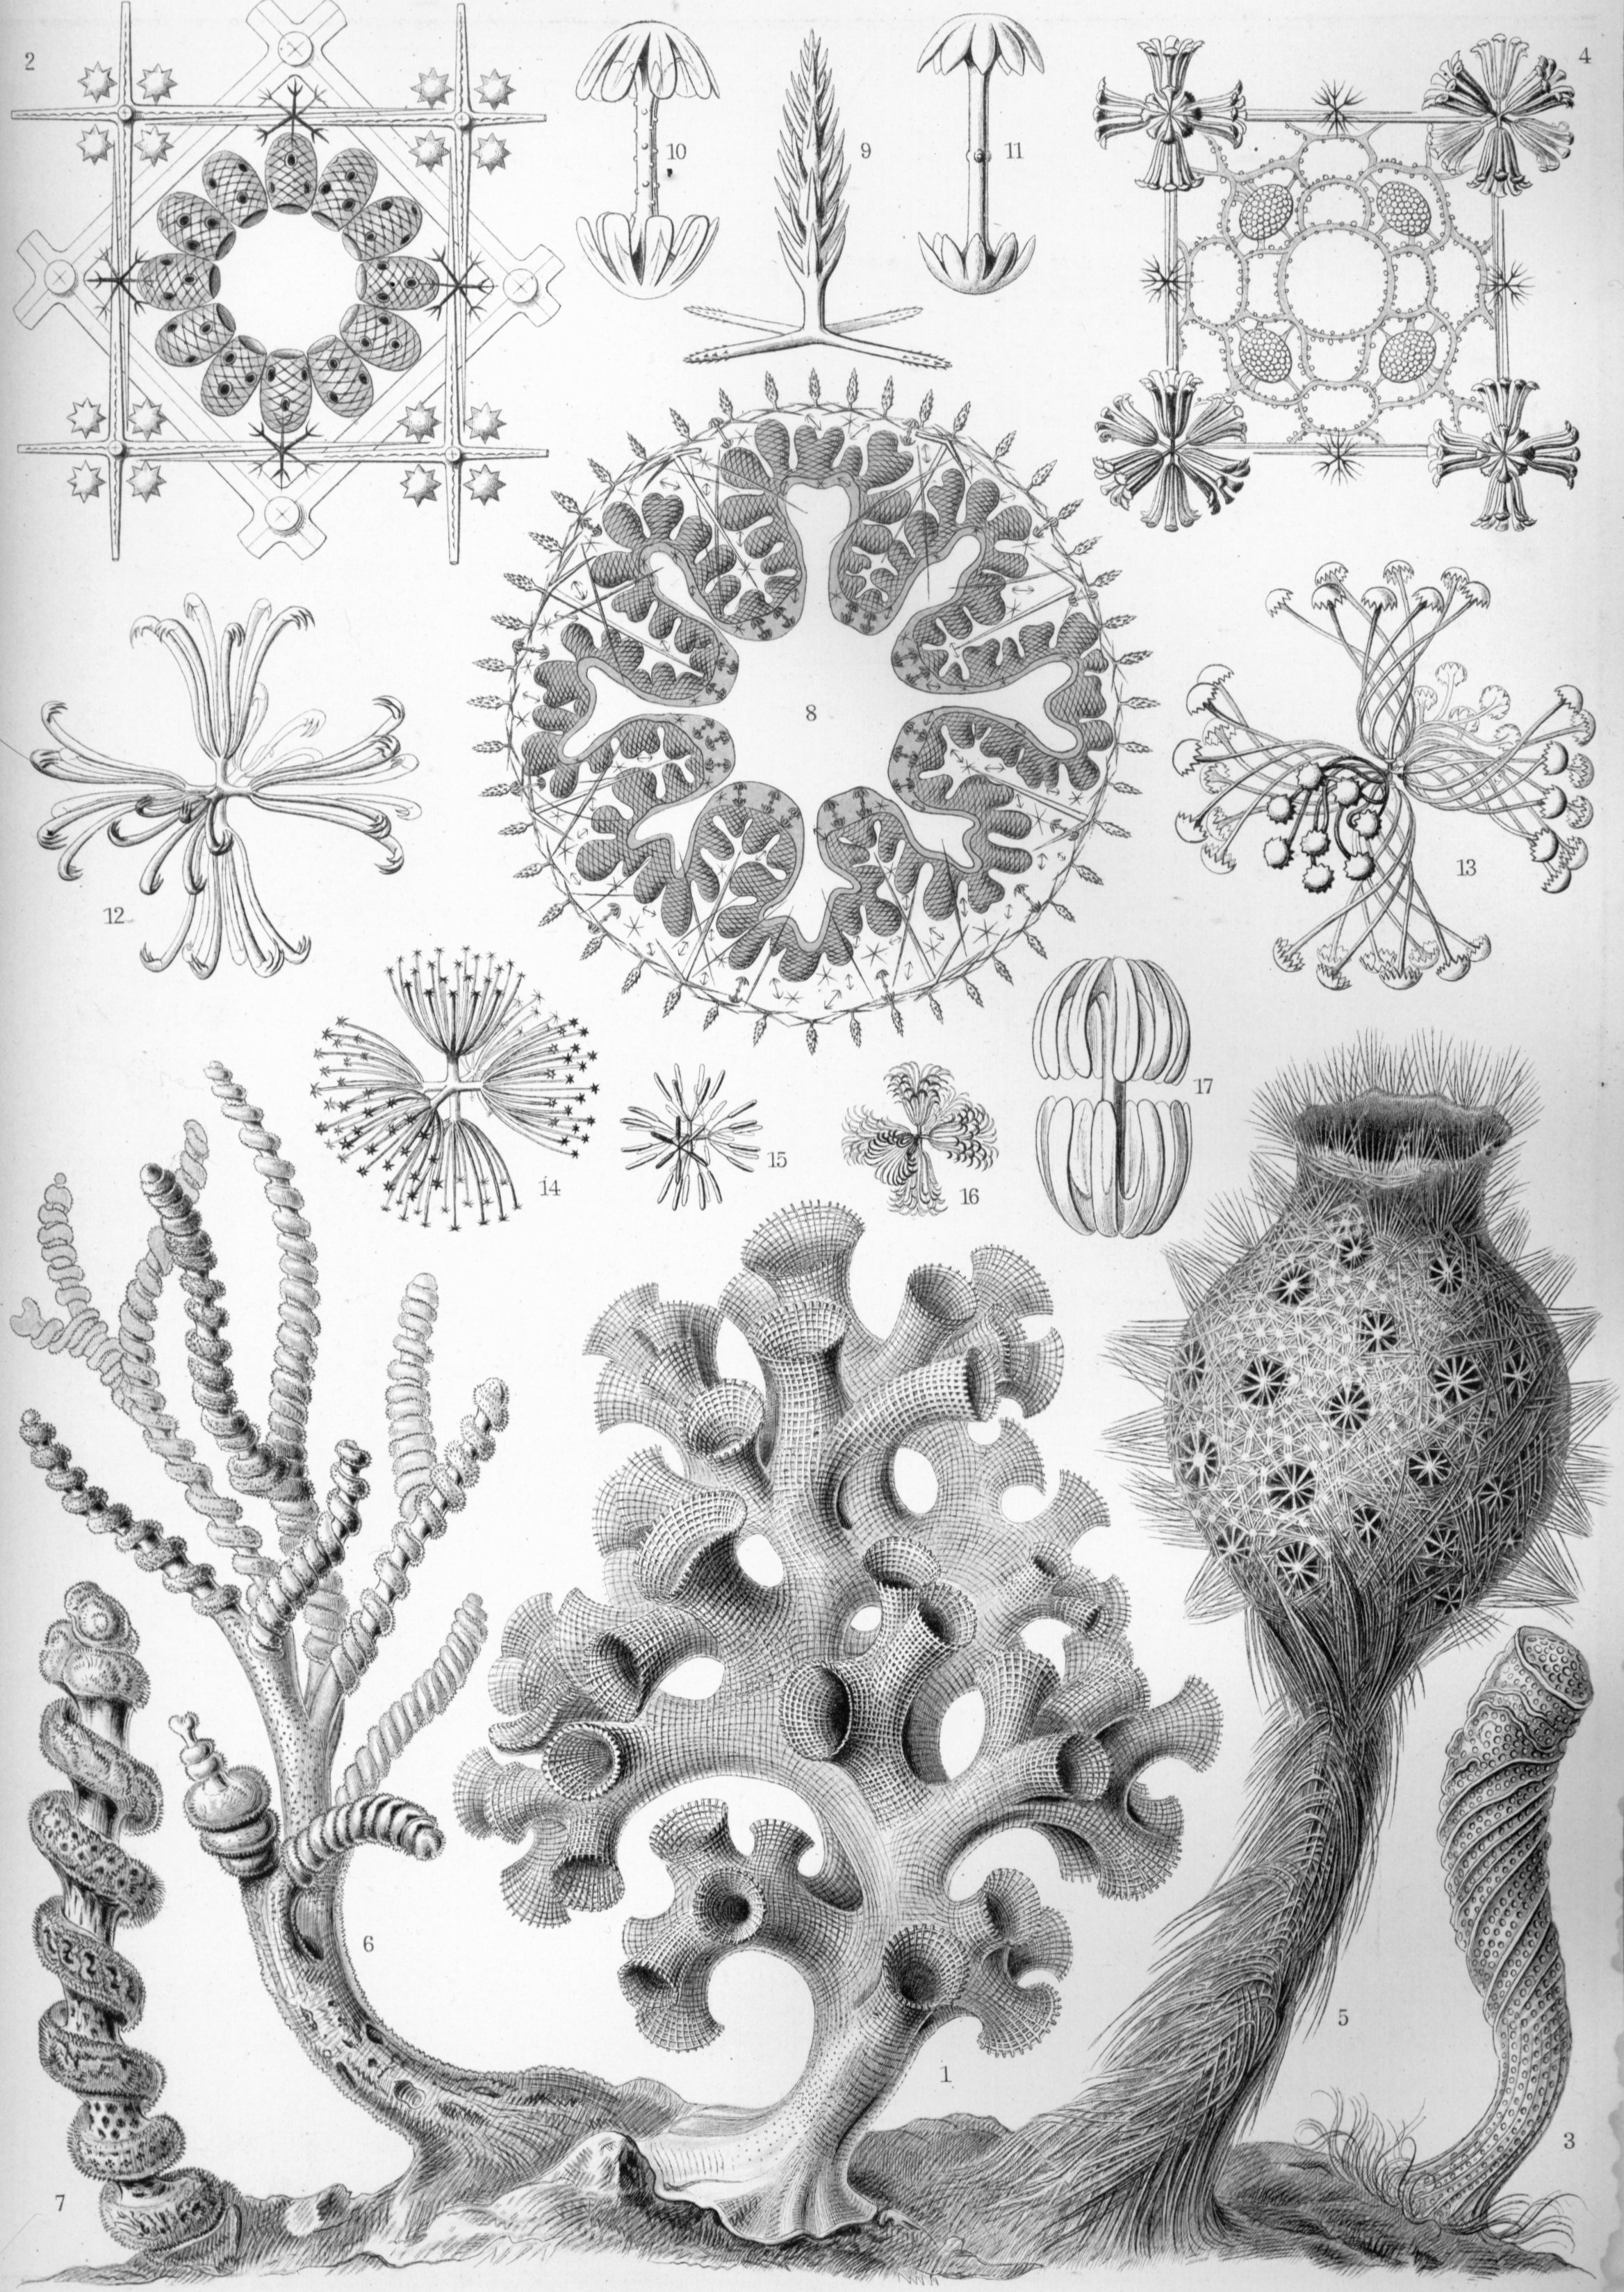 http://upload.wikimedia.org/wikipedia/commons/e/ee/Haeckel_Hexactinellae.jpg